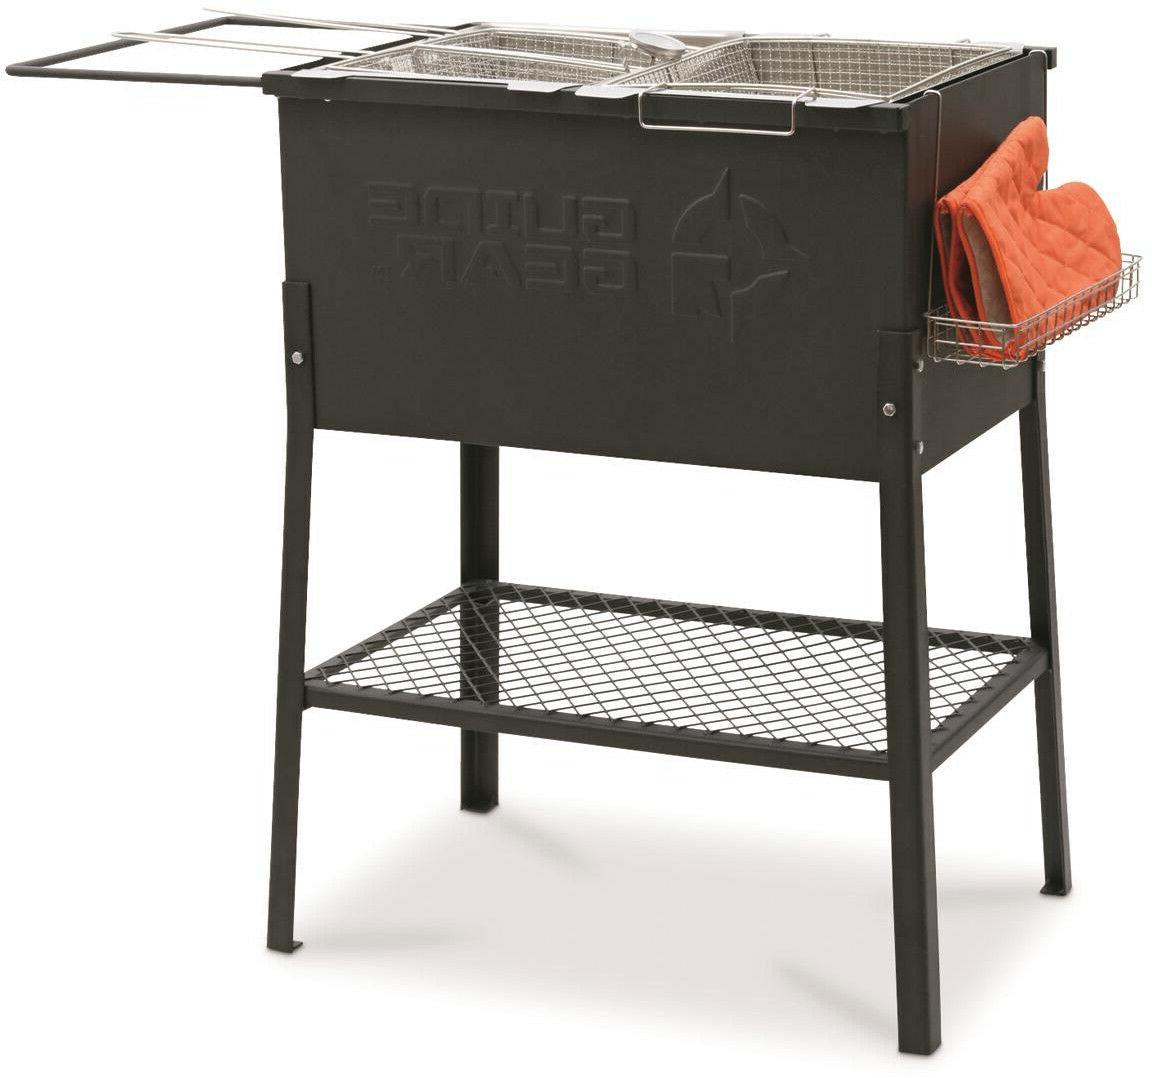 Portable Fryer Camp Party Grill 2 Burner Oil Fry